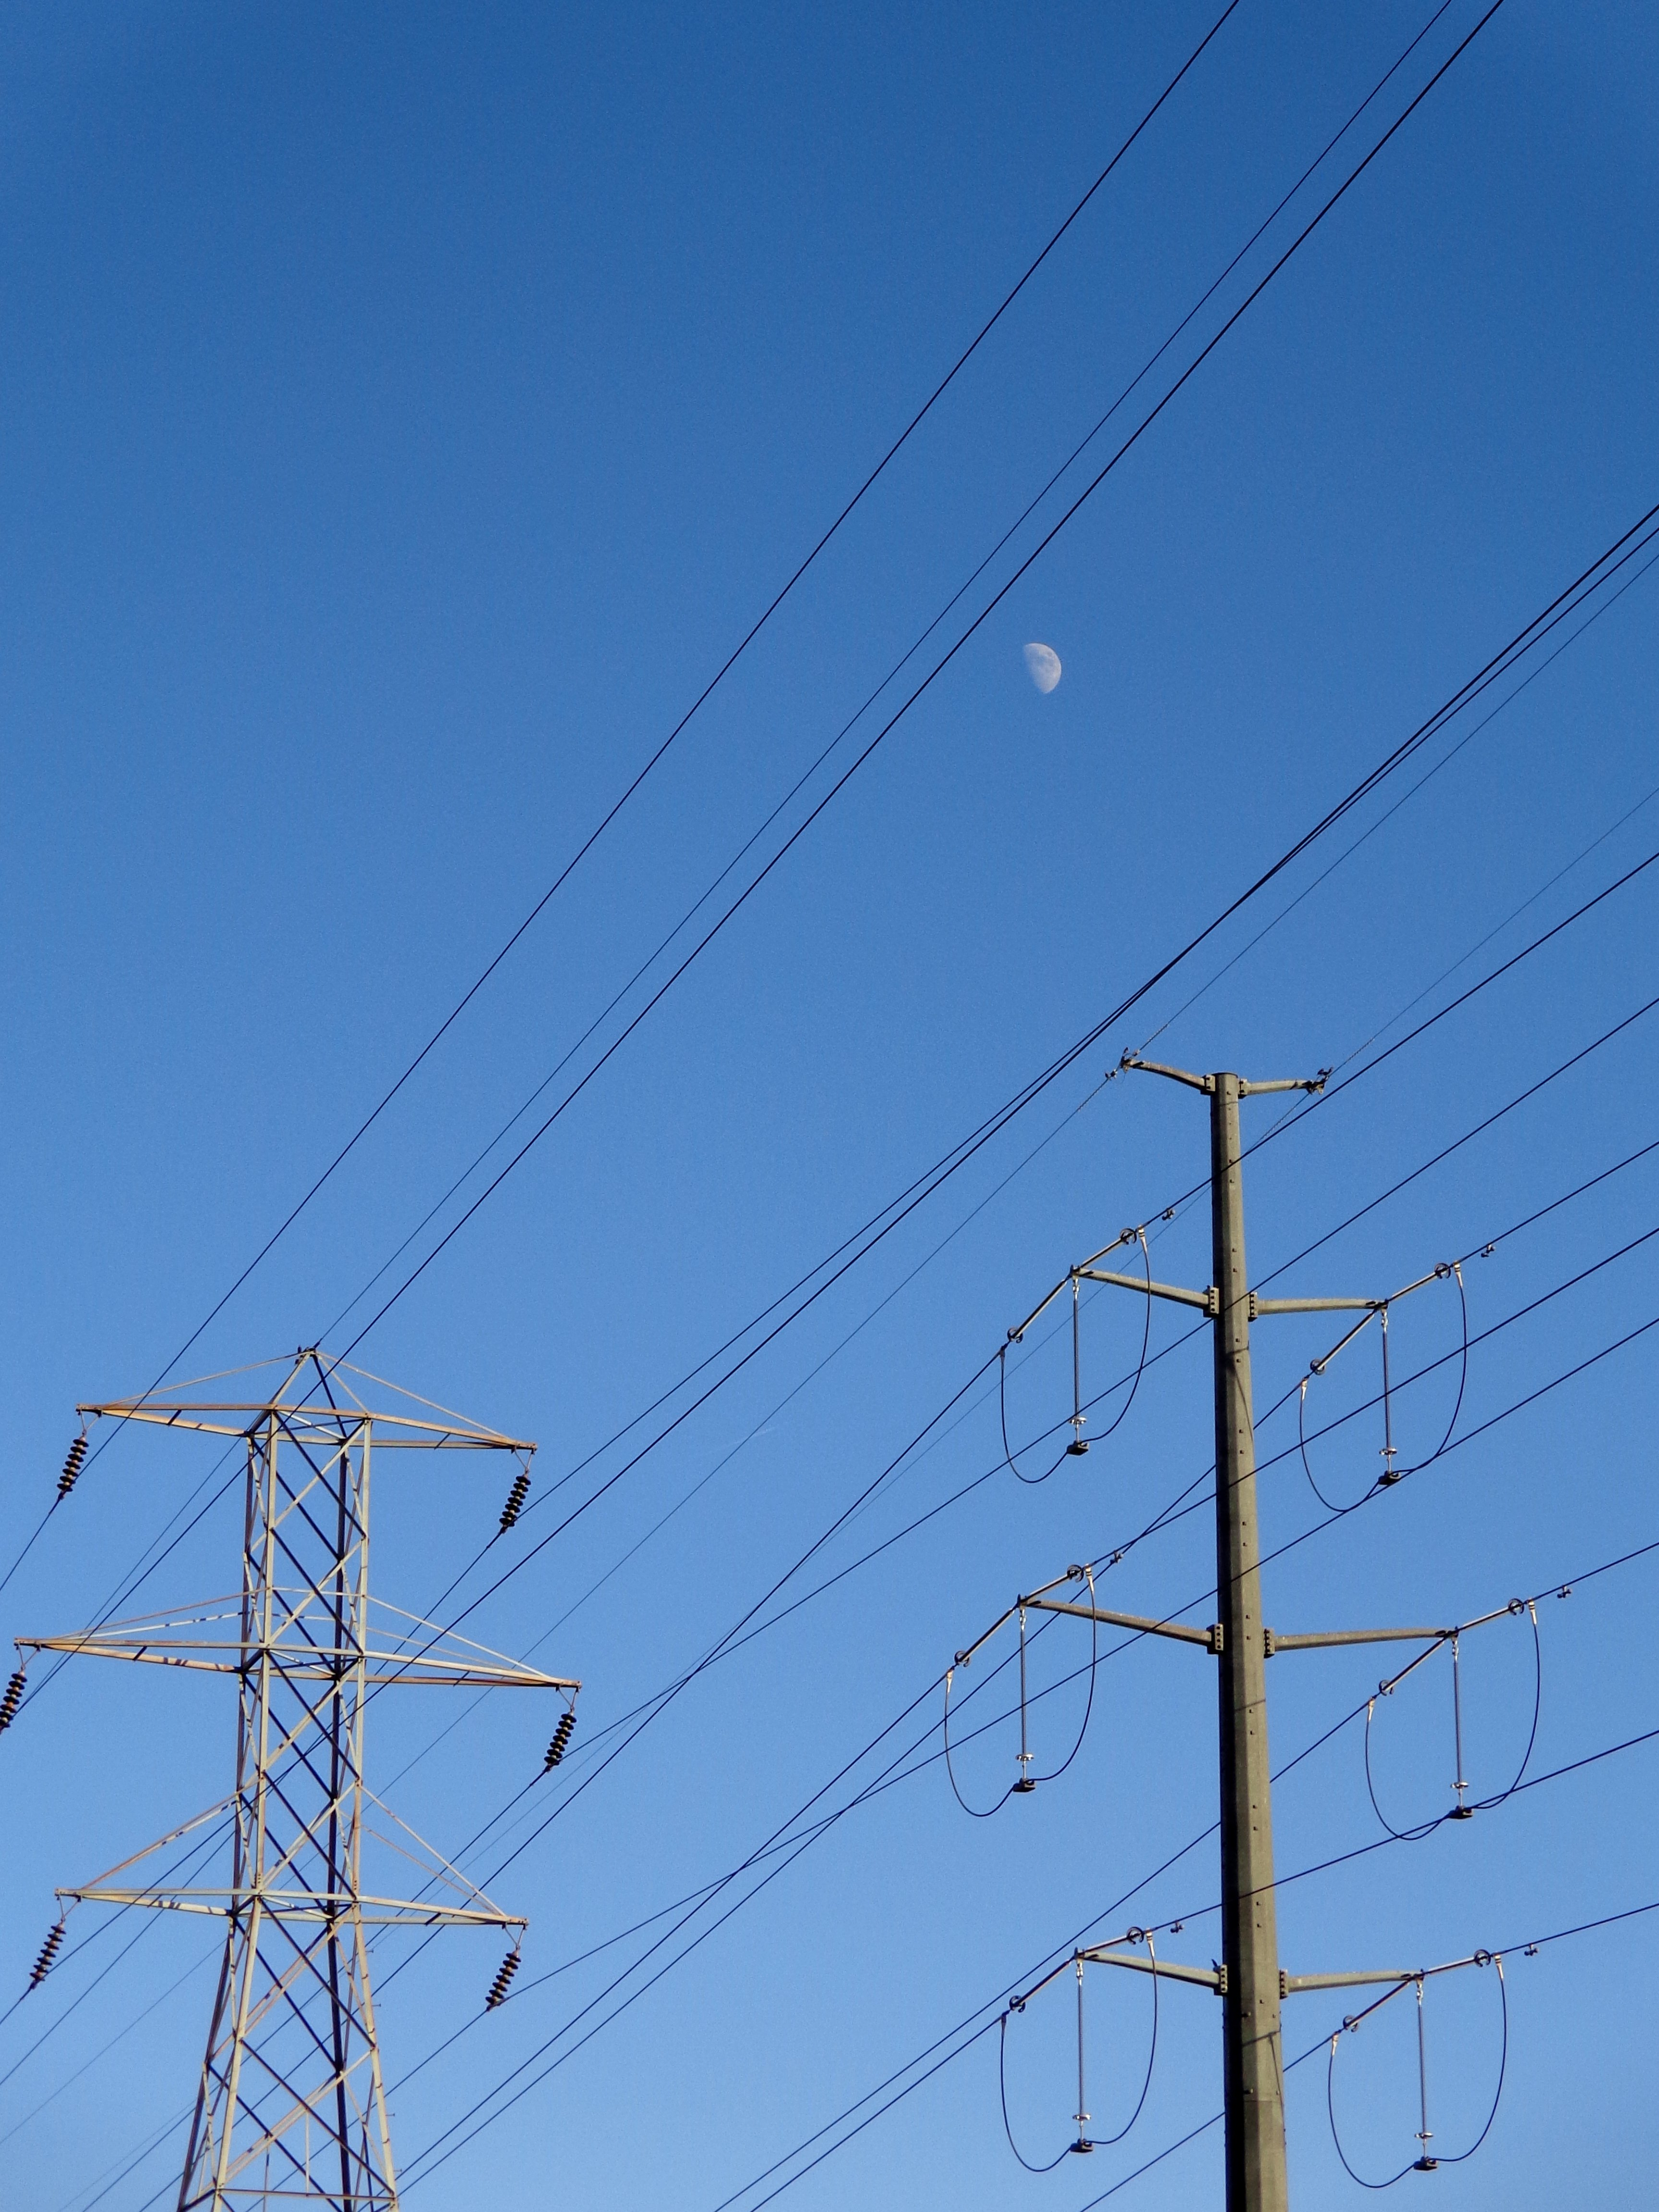 Electric Power Lines : Electric power lines with blue sky and daytime moon